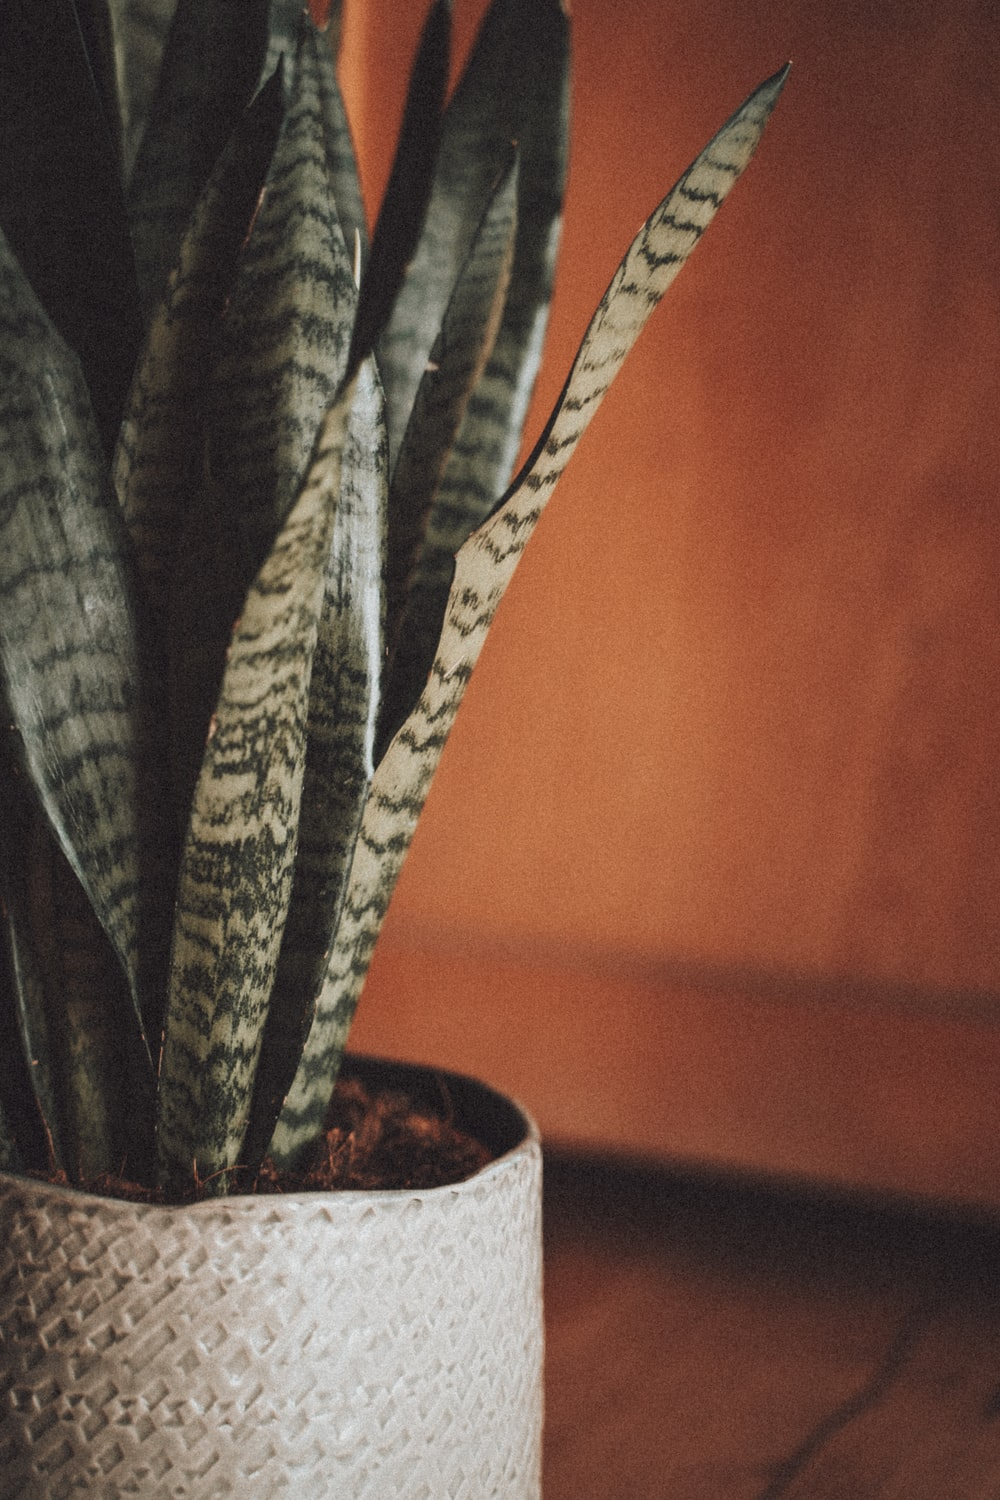 green cactus plant in brown pot